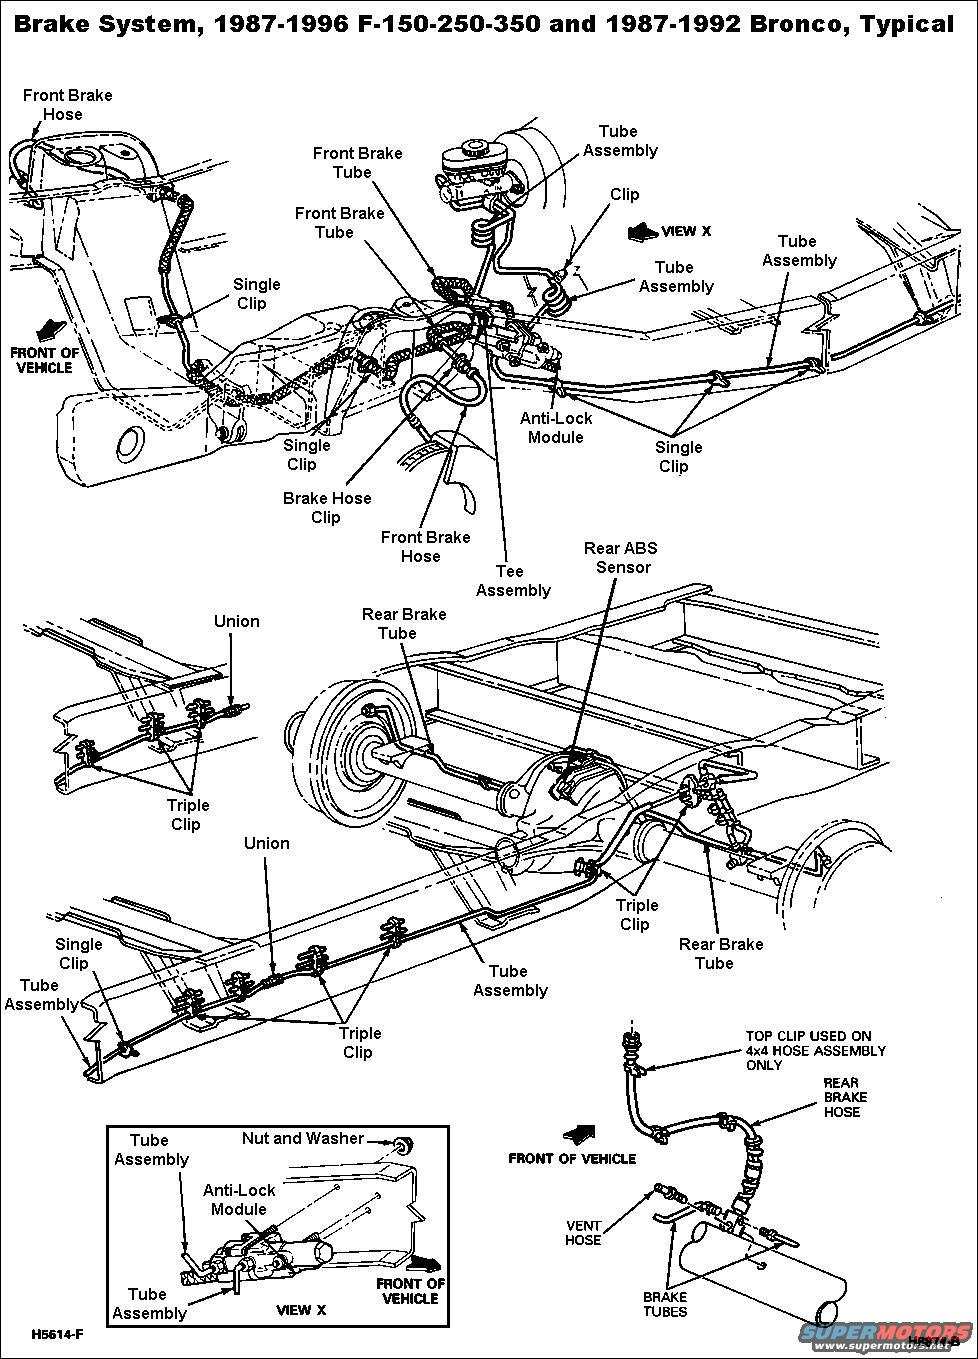 Dodge Pickup Wiring Diagram Rear Will Be A Thing 2001 Ram Tail Light Updated Replaced Some Stuff Brakes Still Suck Ford Truck Engine